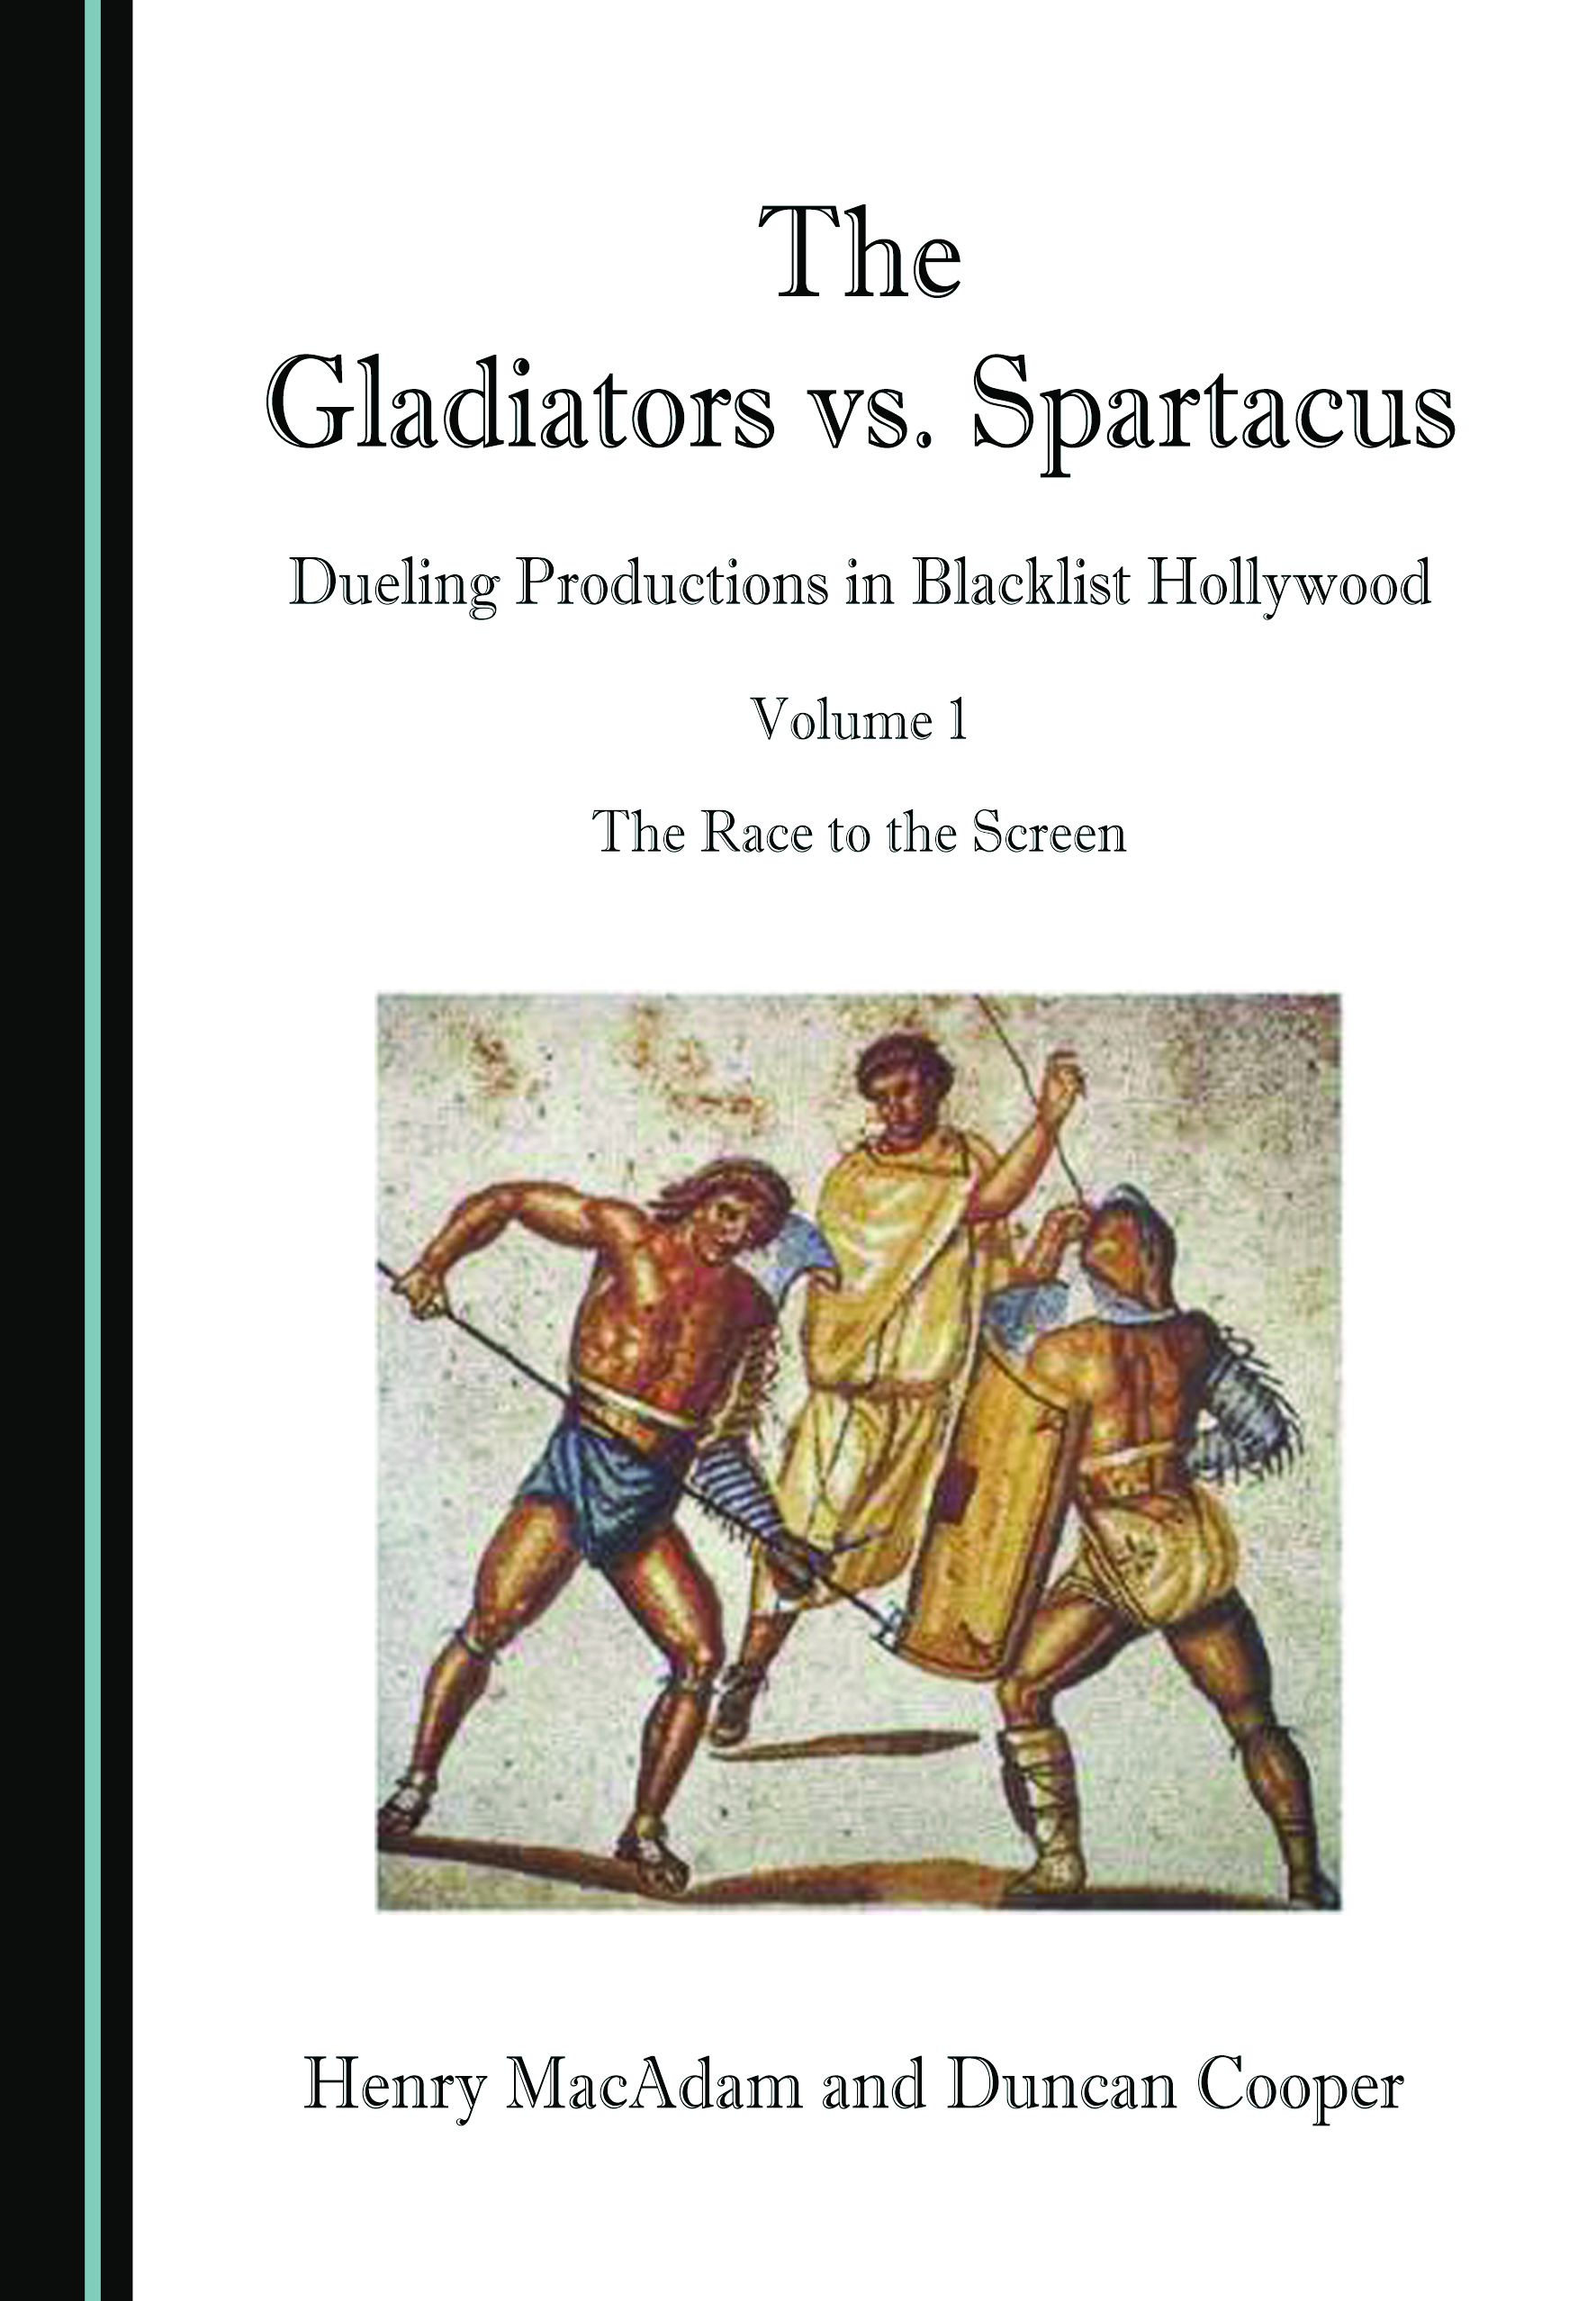 The Gladiators vs. Spartacus, Volume 1: Dueling Productions in Blacklist Hollywood